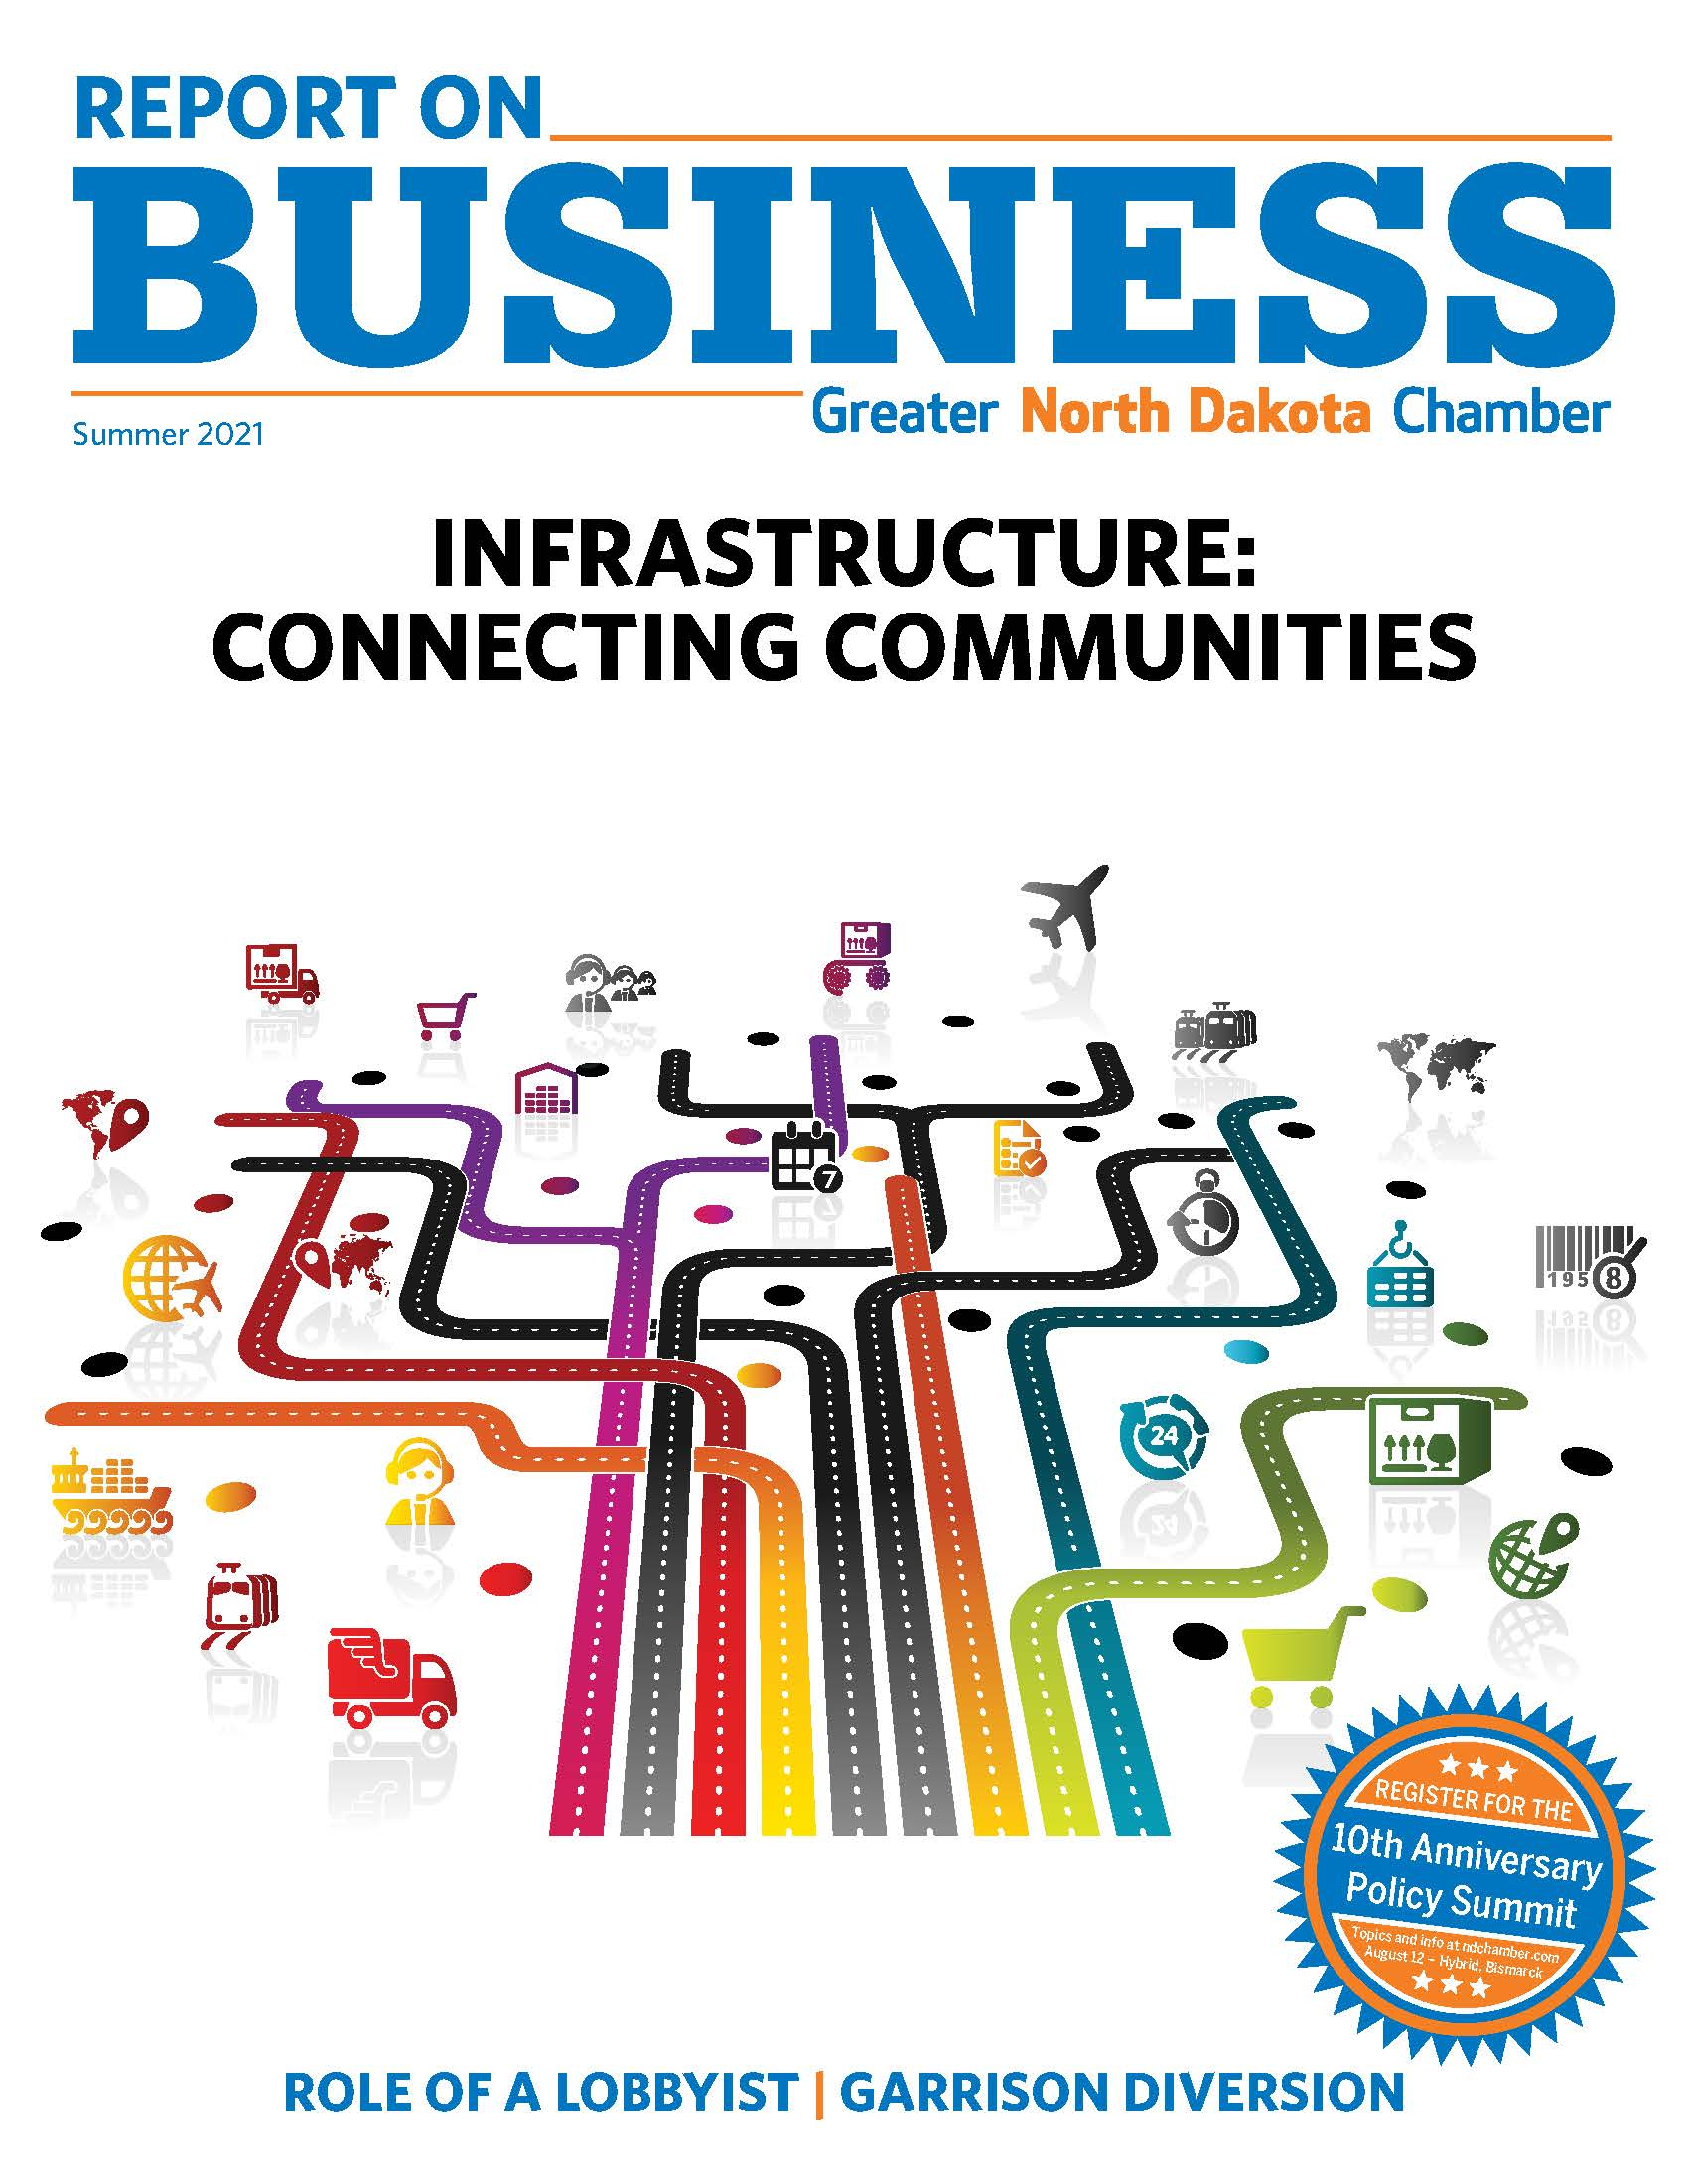 Summer 2021 Report on Business Launch with the Missing Column